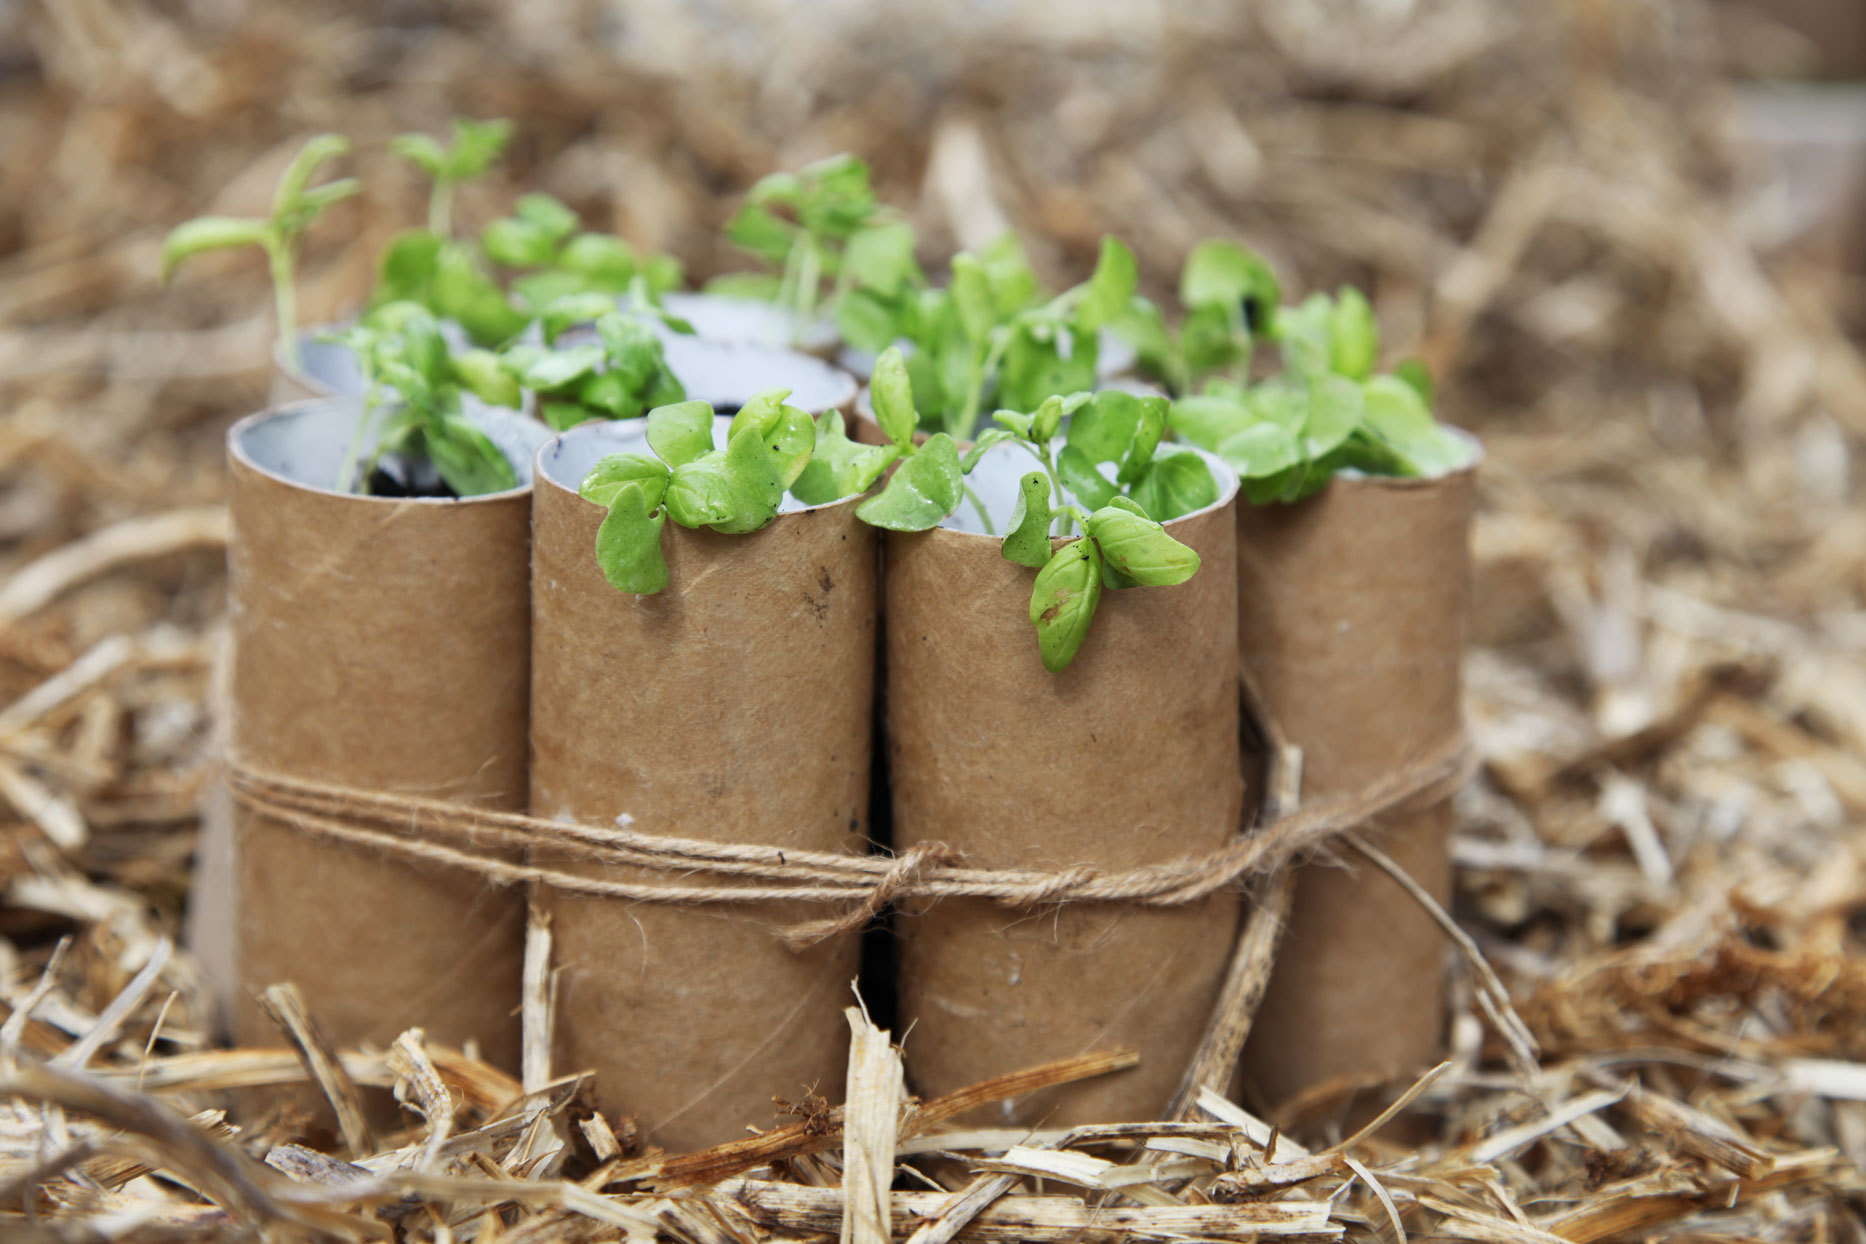 How to Turn Toilet Paper Rolls Into Seed Starters for a Garden